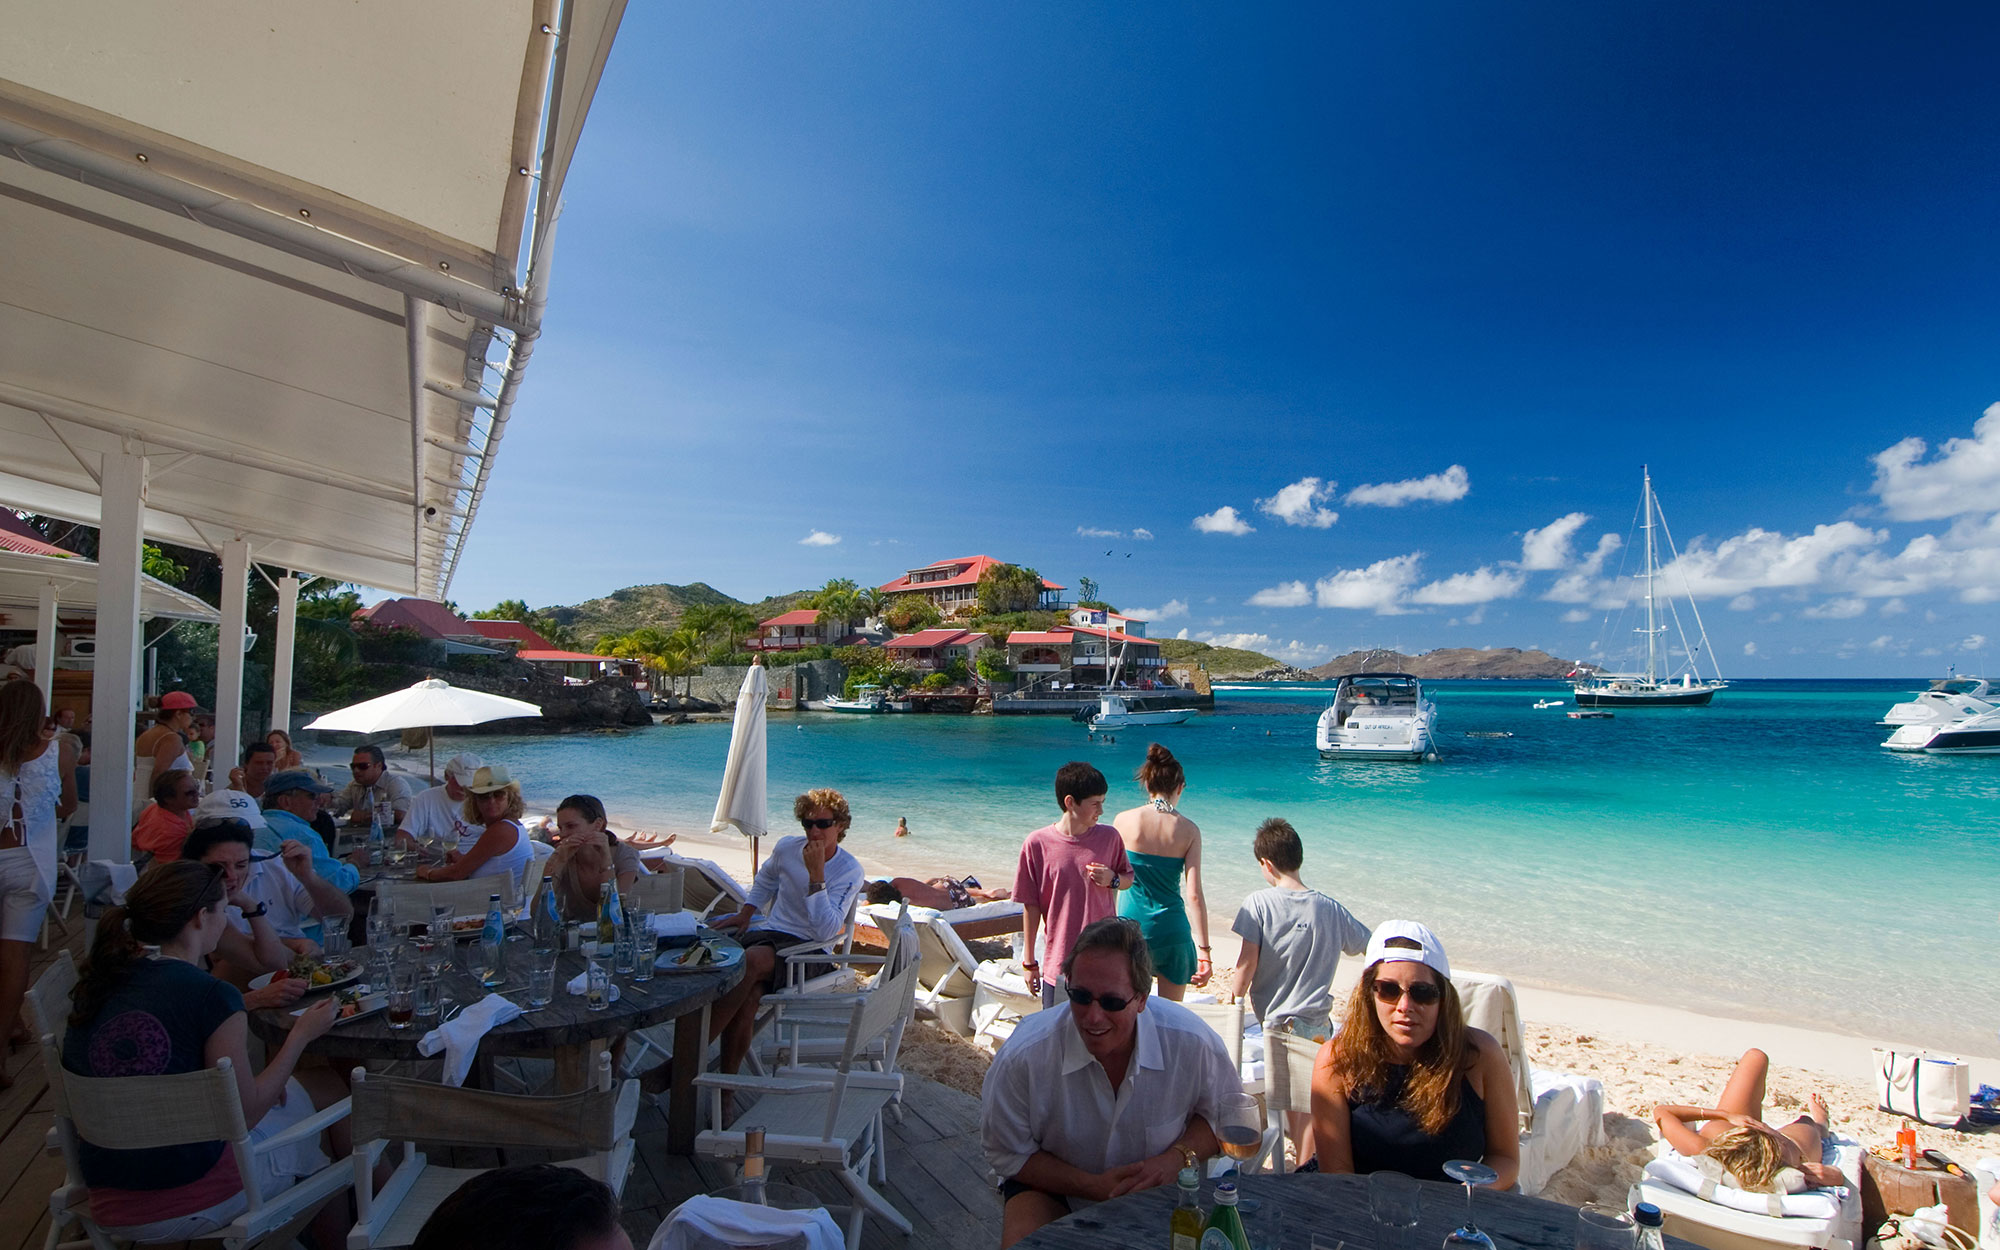 Best Islands for Food: No. 2 St. Bart's